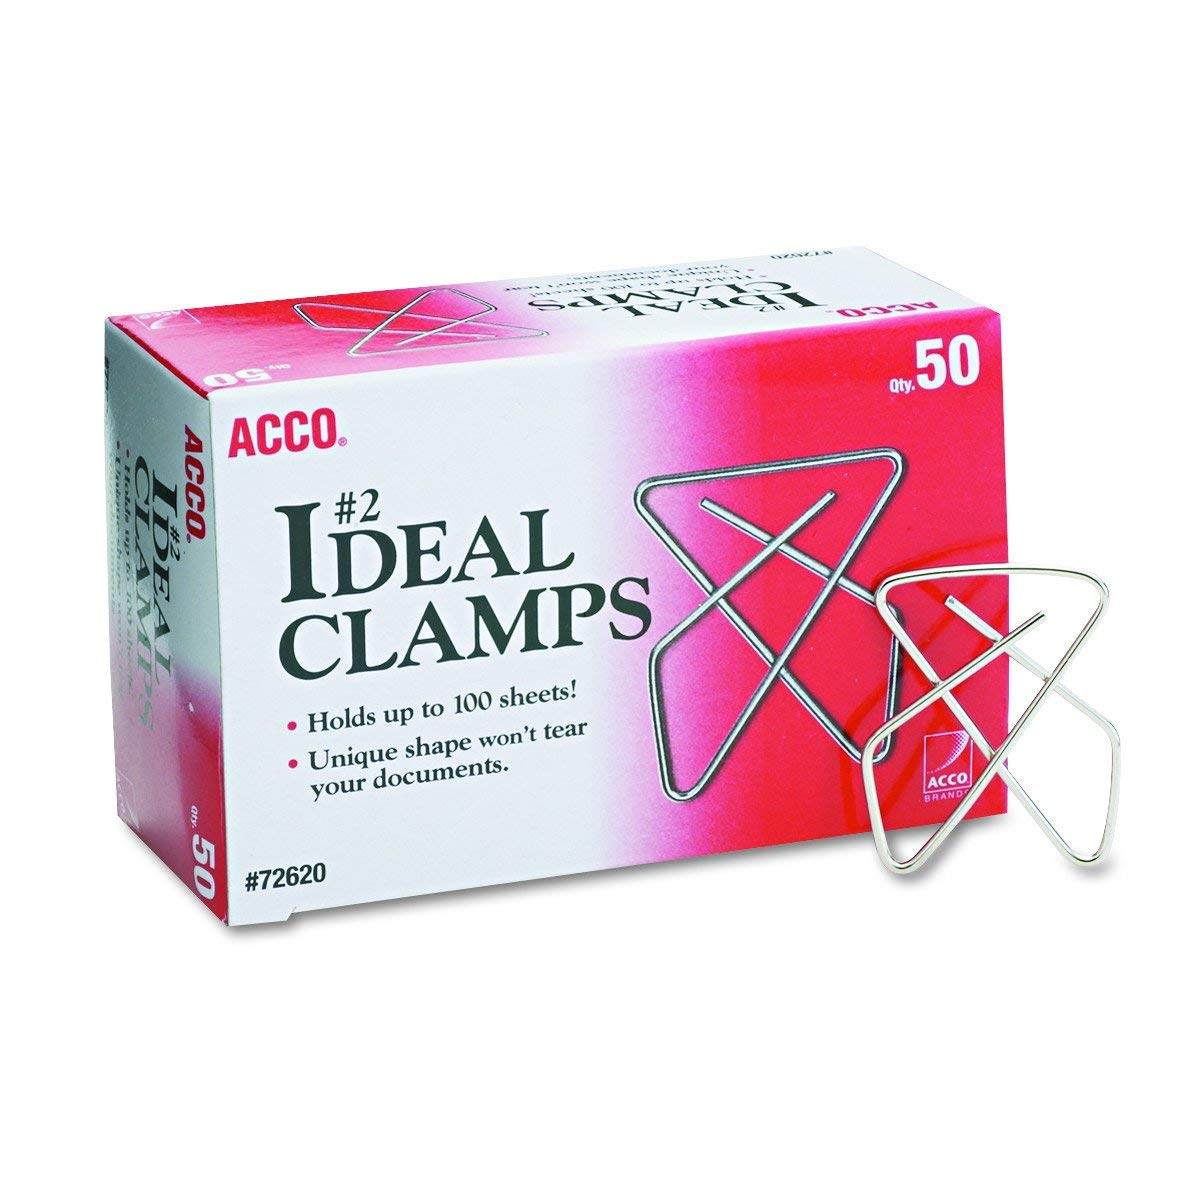 ACCO Ideal Butterfly Paper Clamps, Steel Wire, Small 1.5 Inch Size, 100 Sheet Capacity, Silver, 50 Clamps per Box (A7072620), Pack of 12